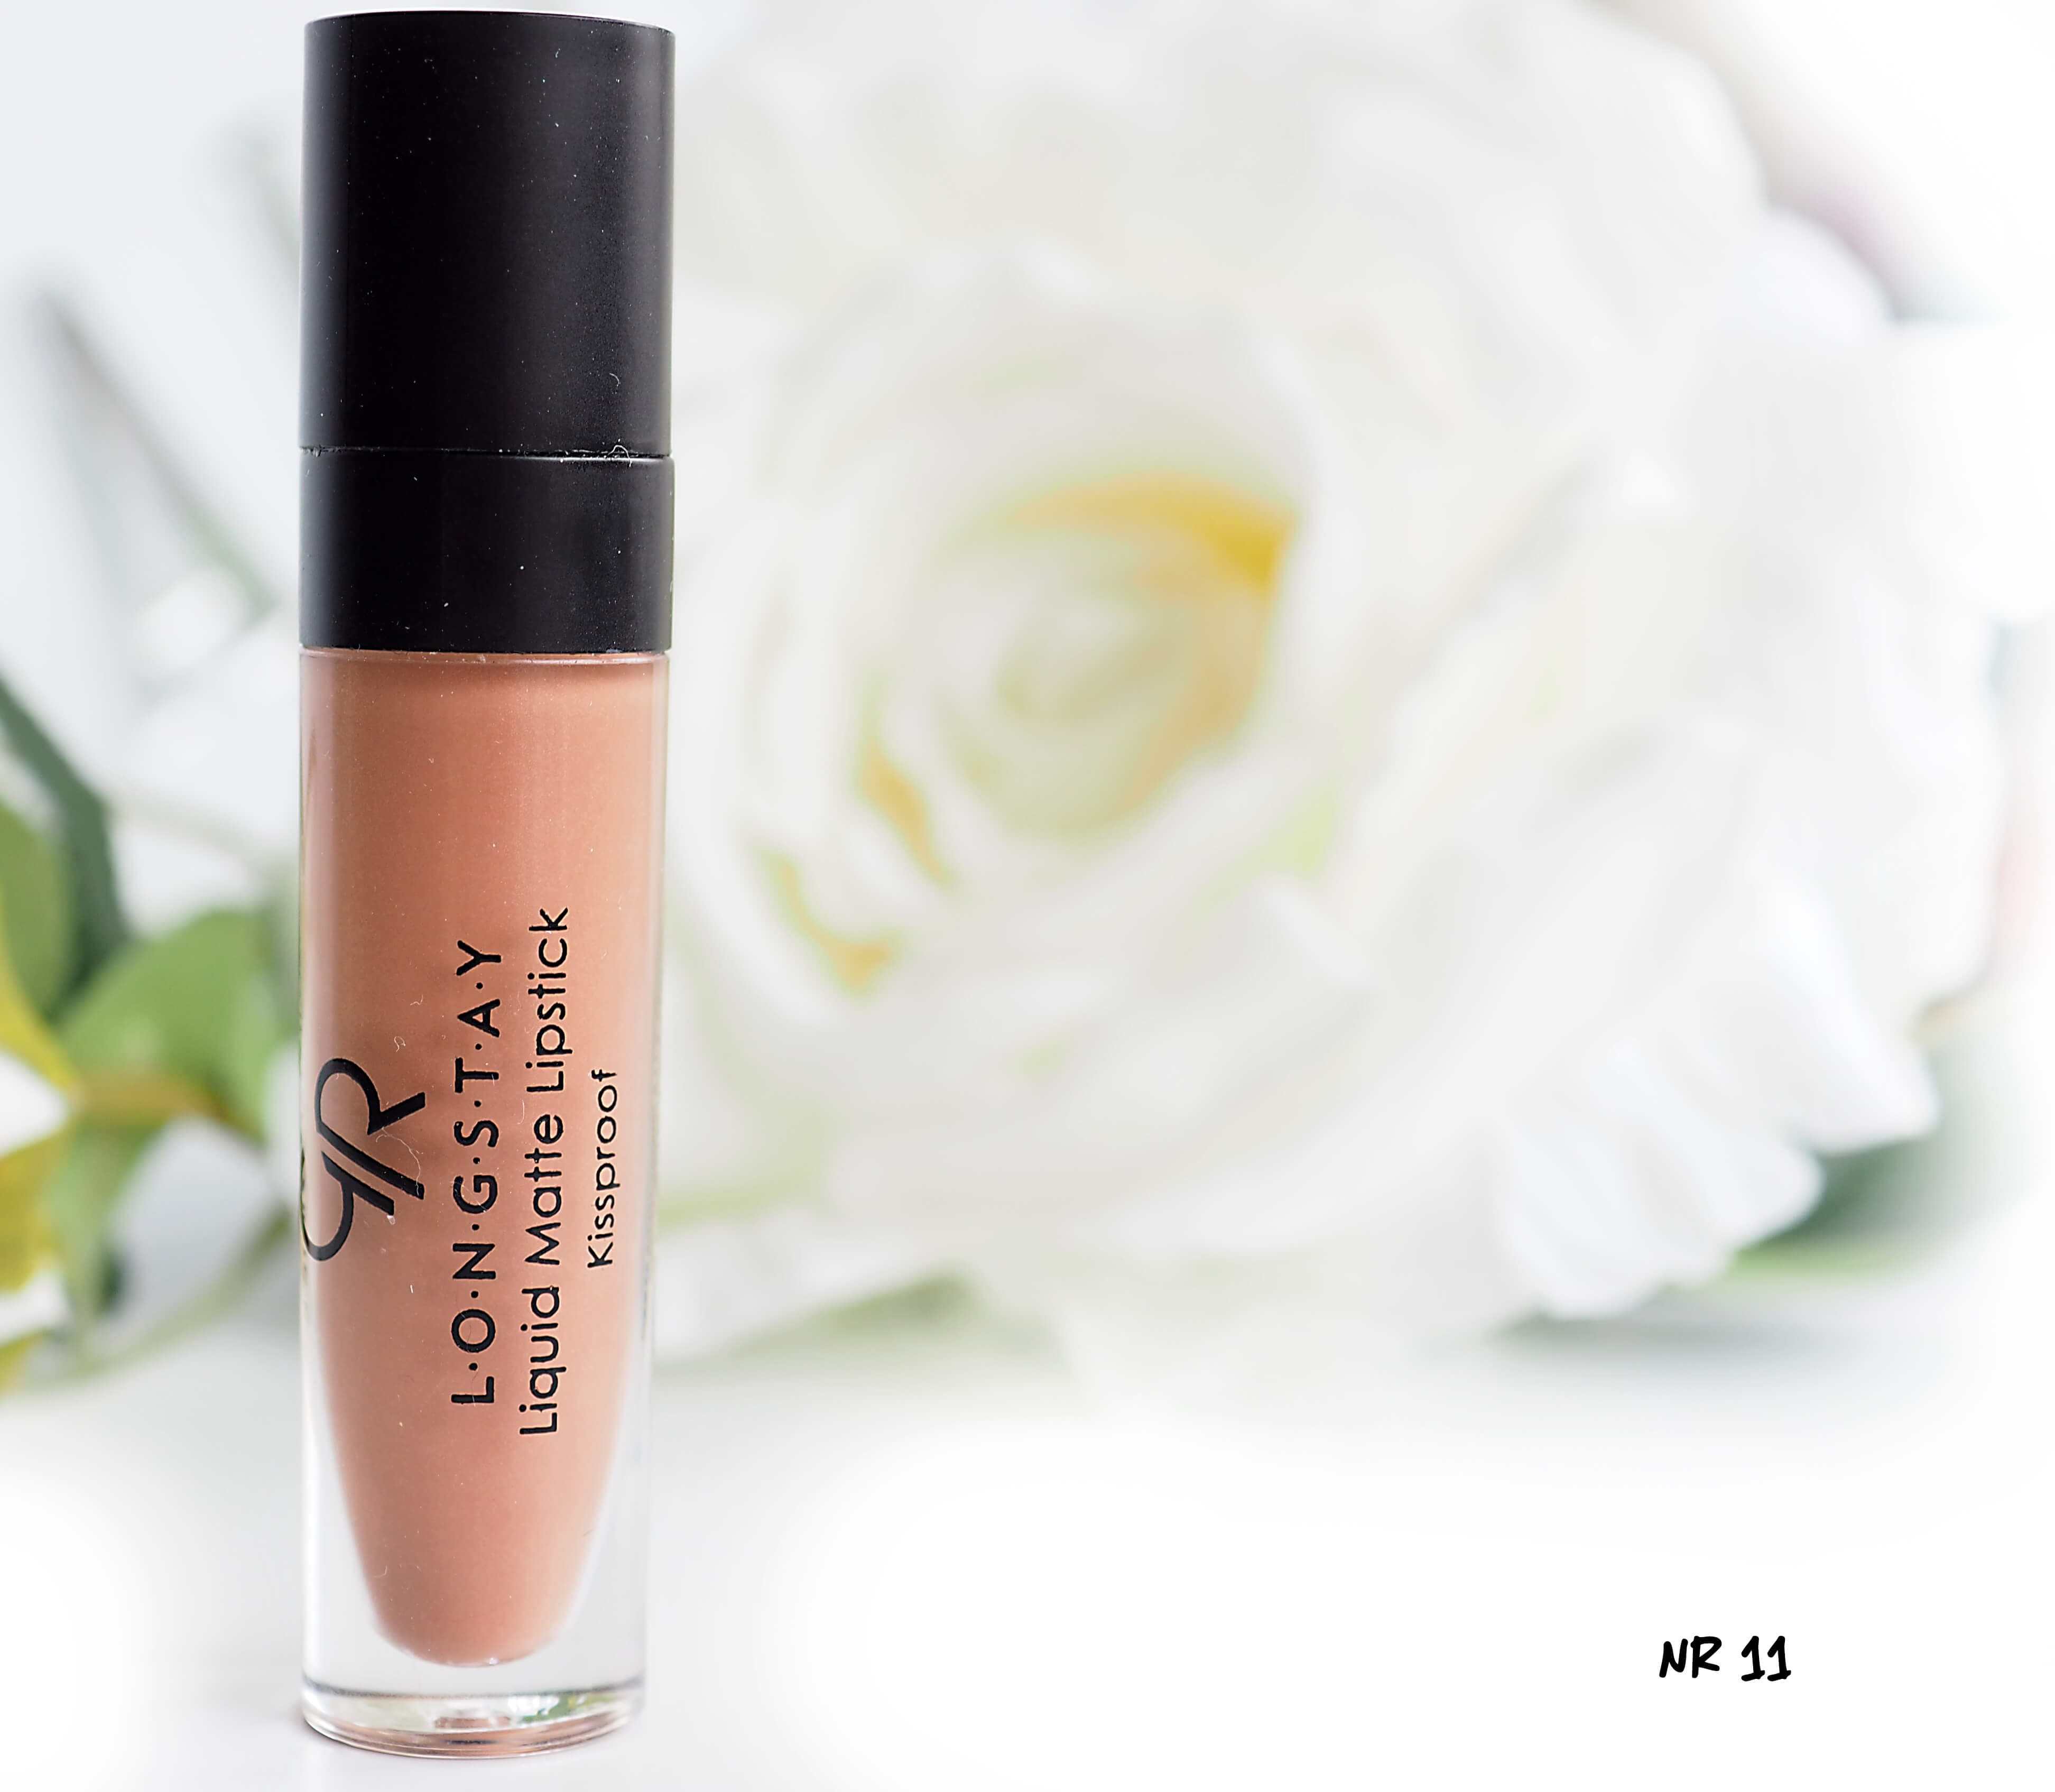 11 GOLDEN ROSE LONGSTAY LIQUID MATTE LIPSTICK